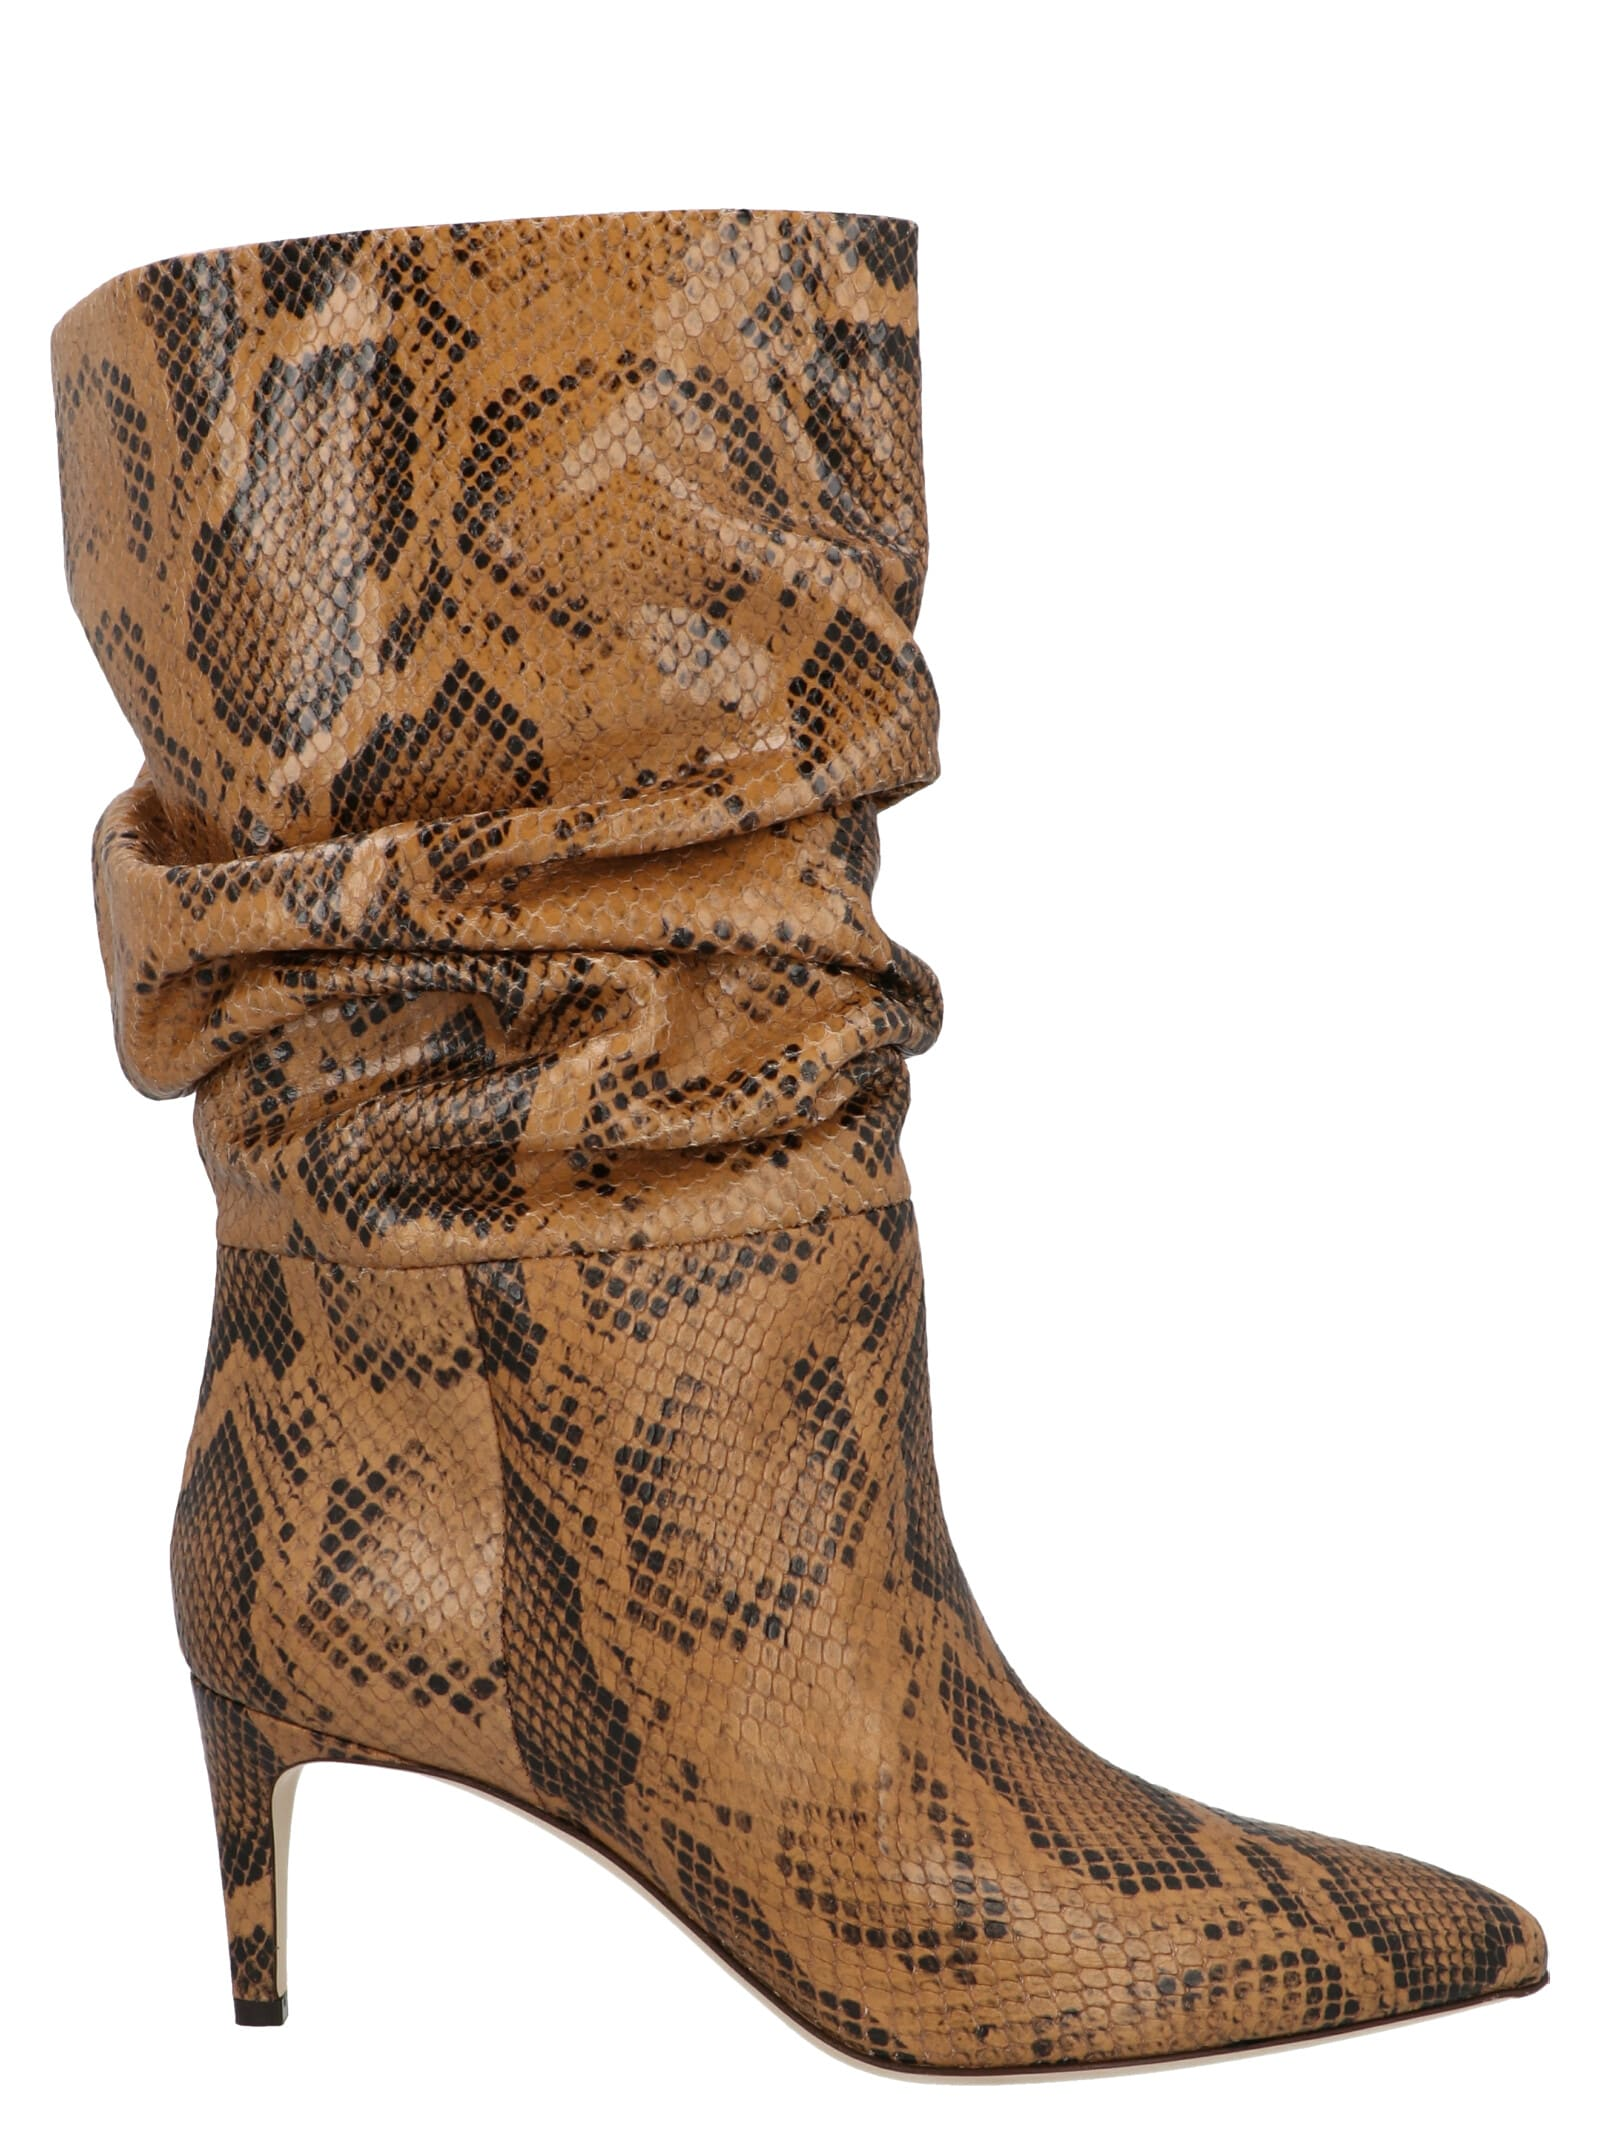 Paris Texas Slouchy Shoes In Marrone